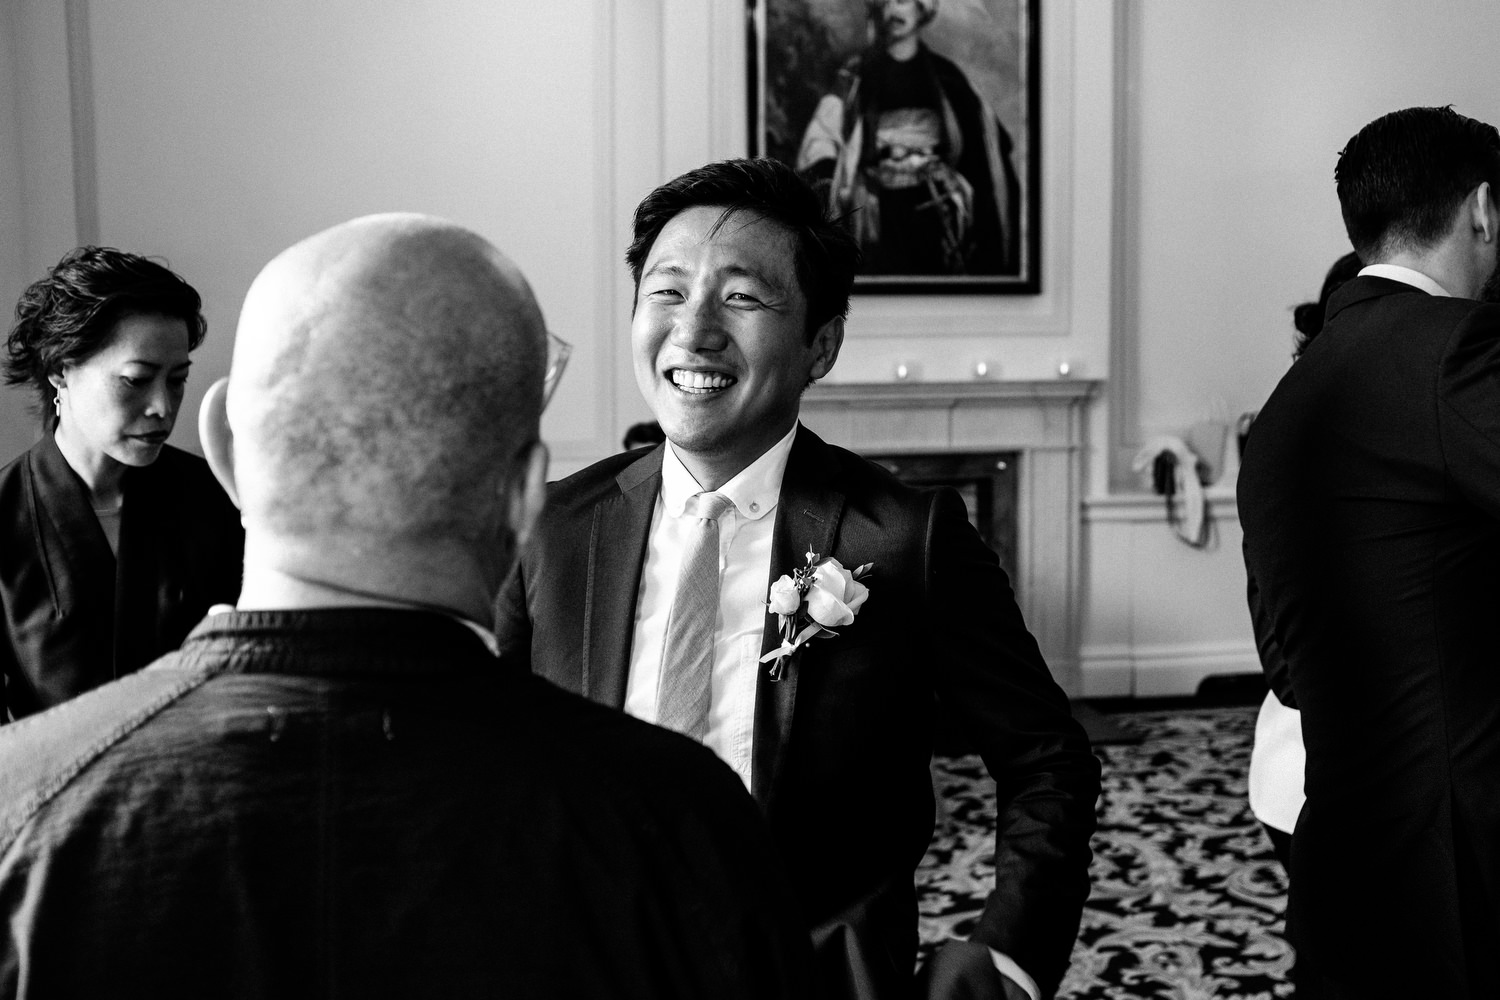 dmp0465_photographer_wedding_dublin_david_mcclelland_candid_photography_fujifilm_shelbourne_reception_documentary